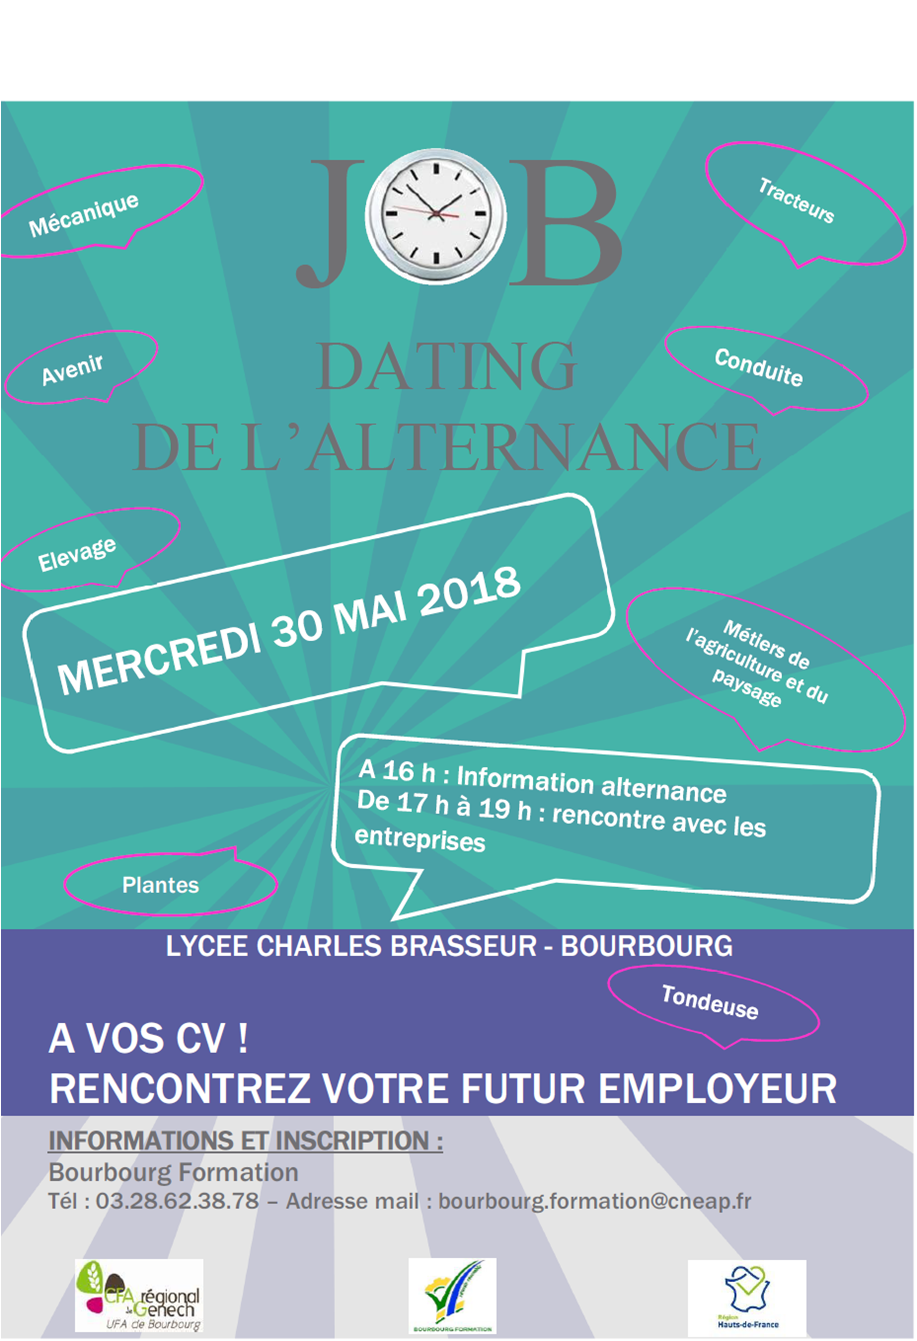 job dating de l u2019alternance